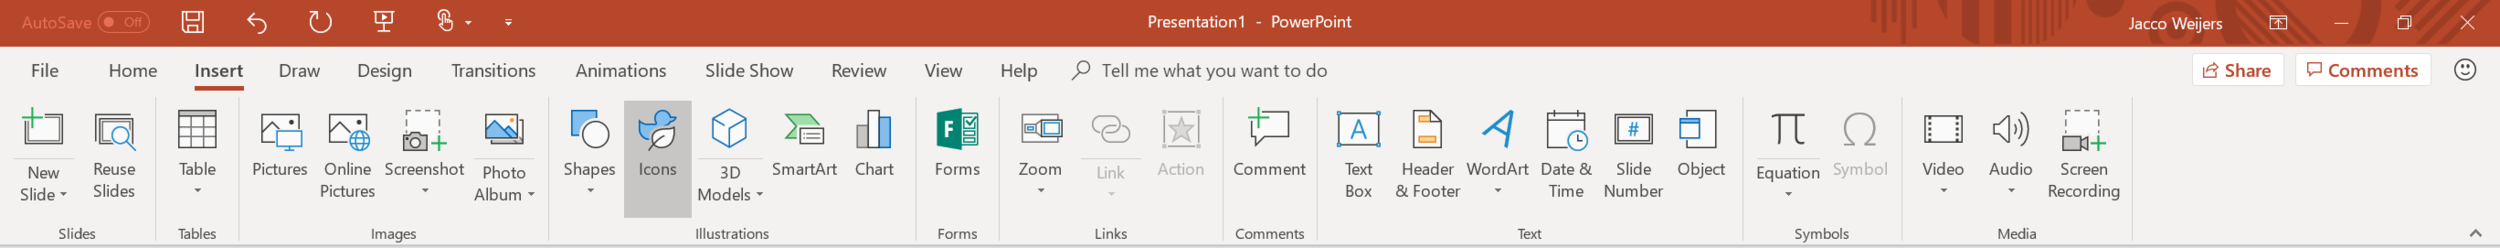 PowerPoint Icons.PNG